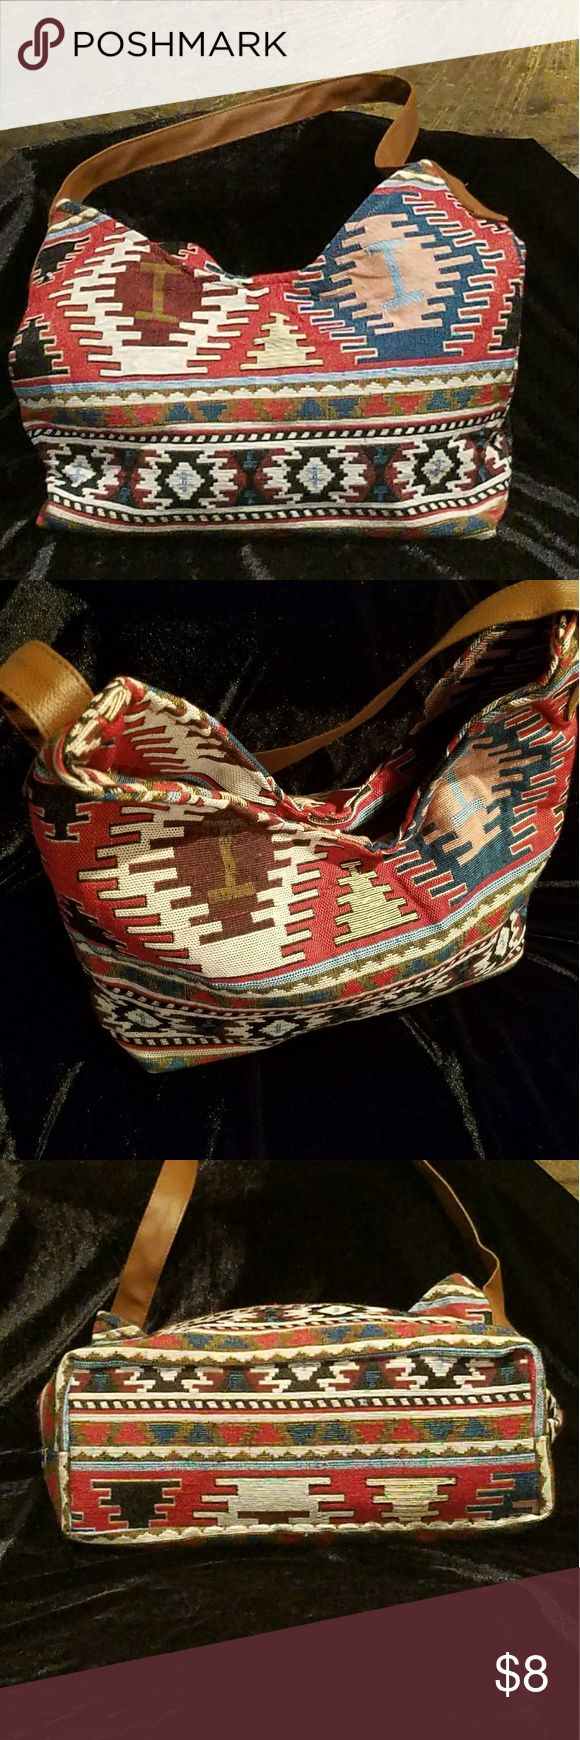 AZTEC PRINT PURSE This is a shoulder purse made of fabric with great colors....  It is versatile.  Never used.  I received it as a gift. Gold Coast Bags Shoulder Bags